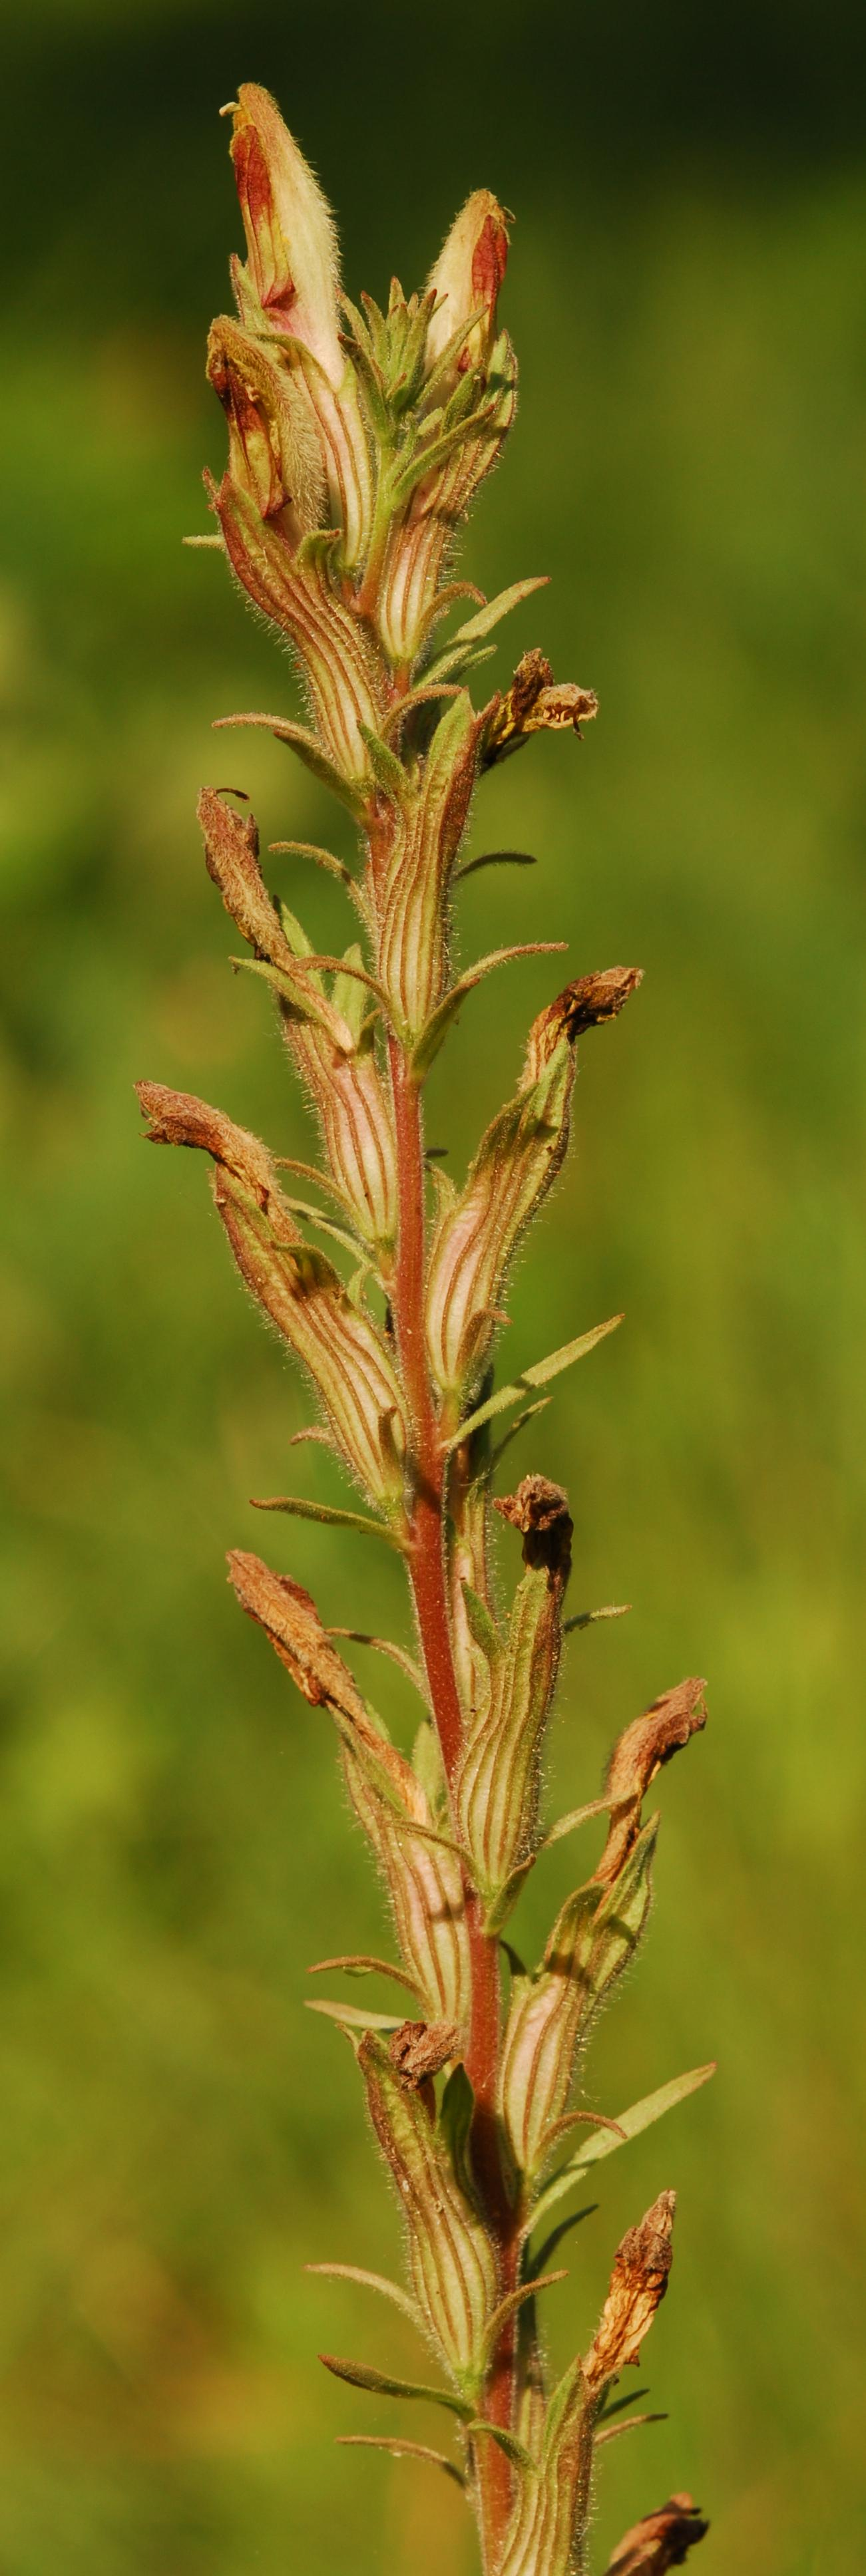 photo of American chaffseed